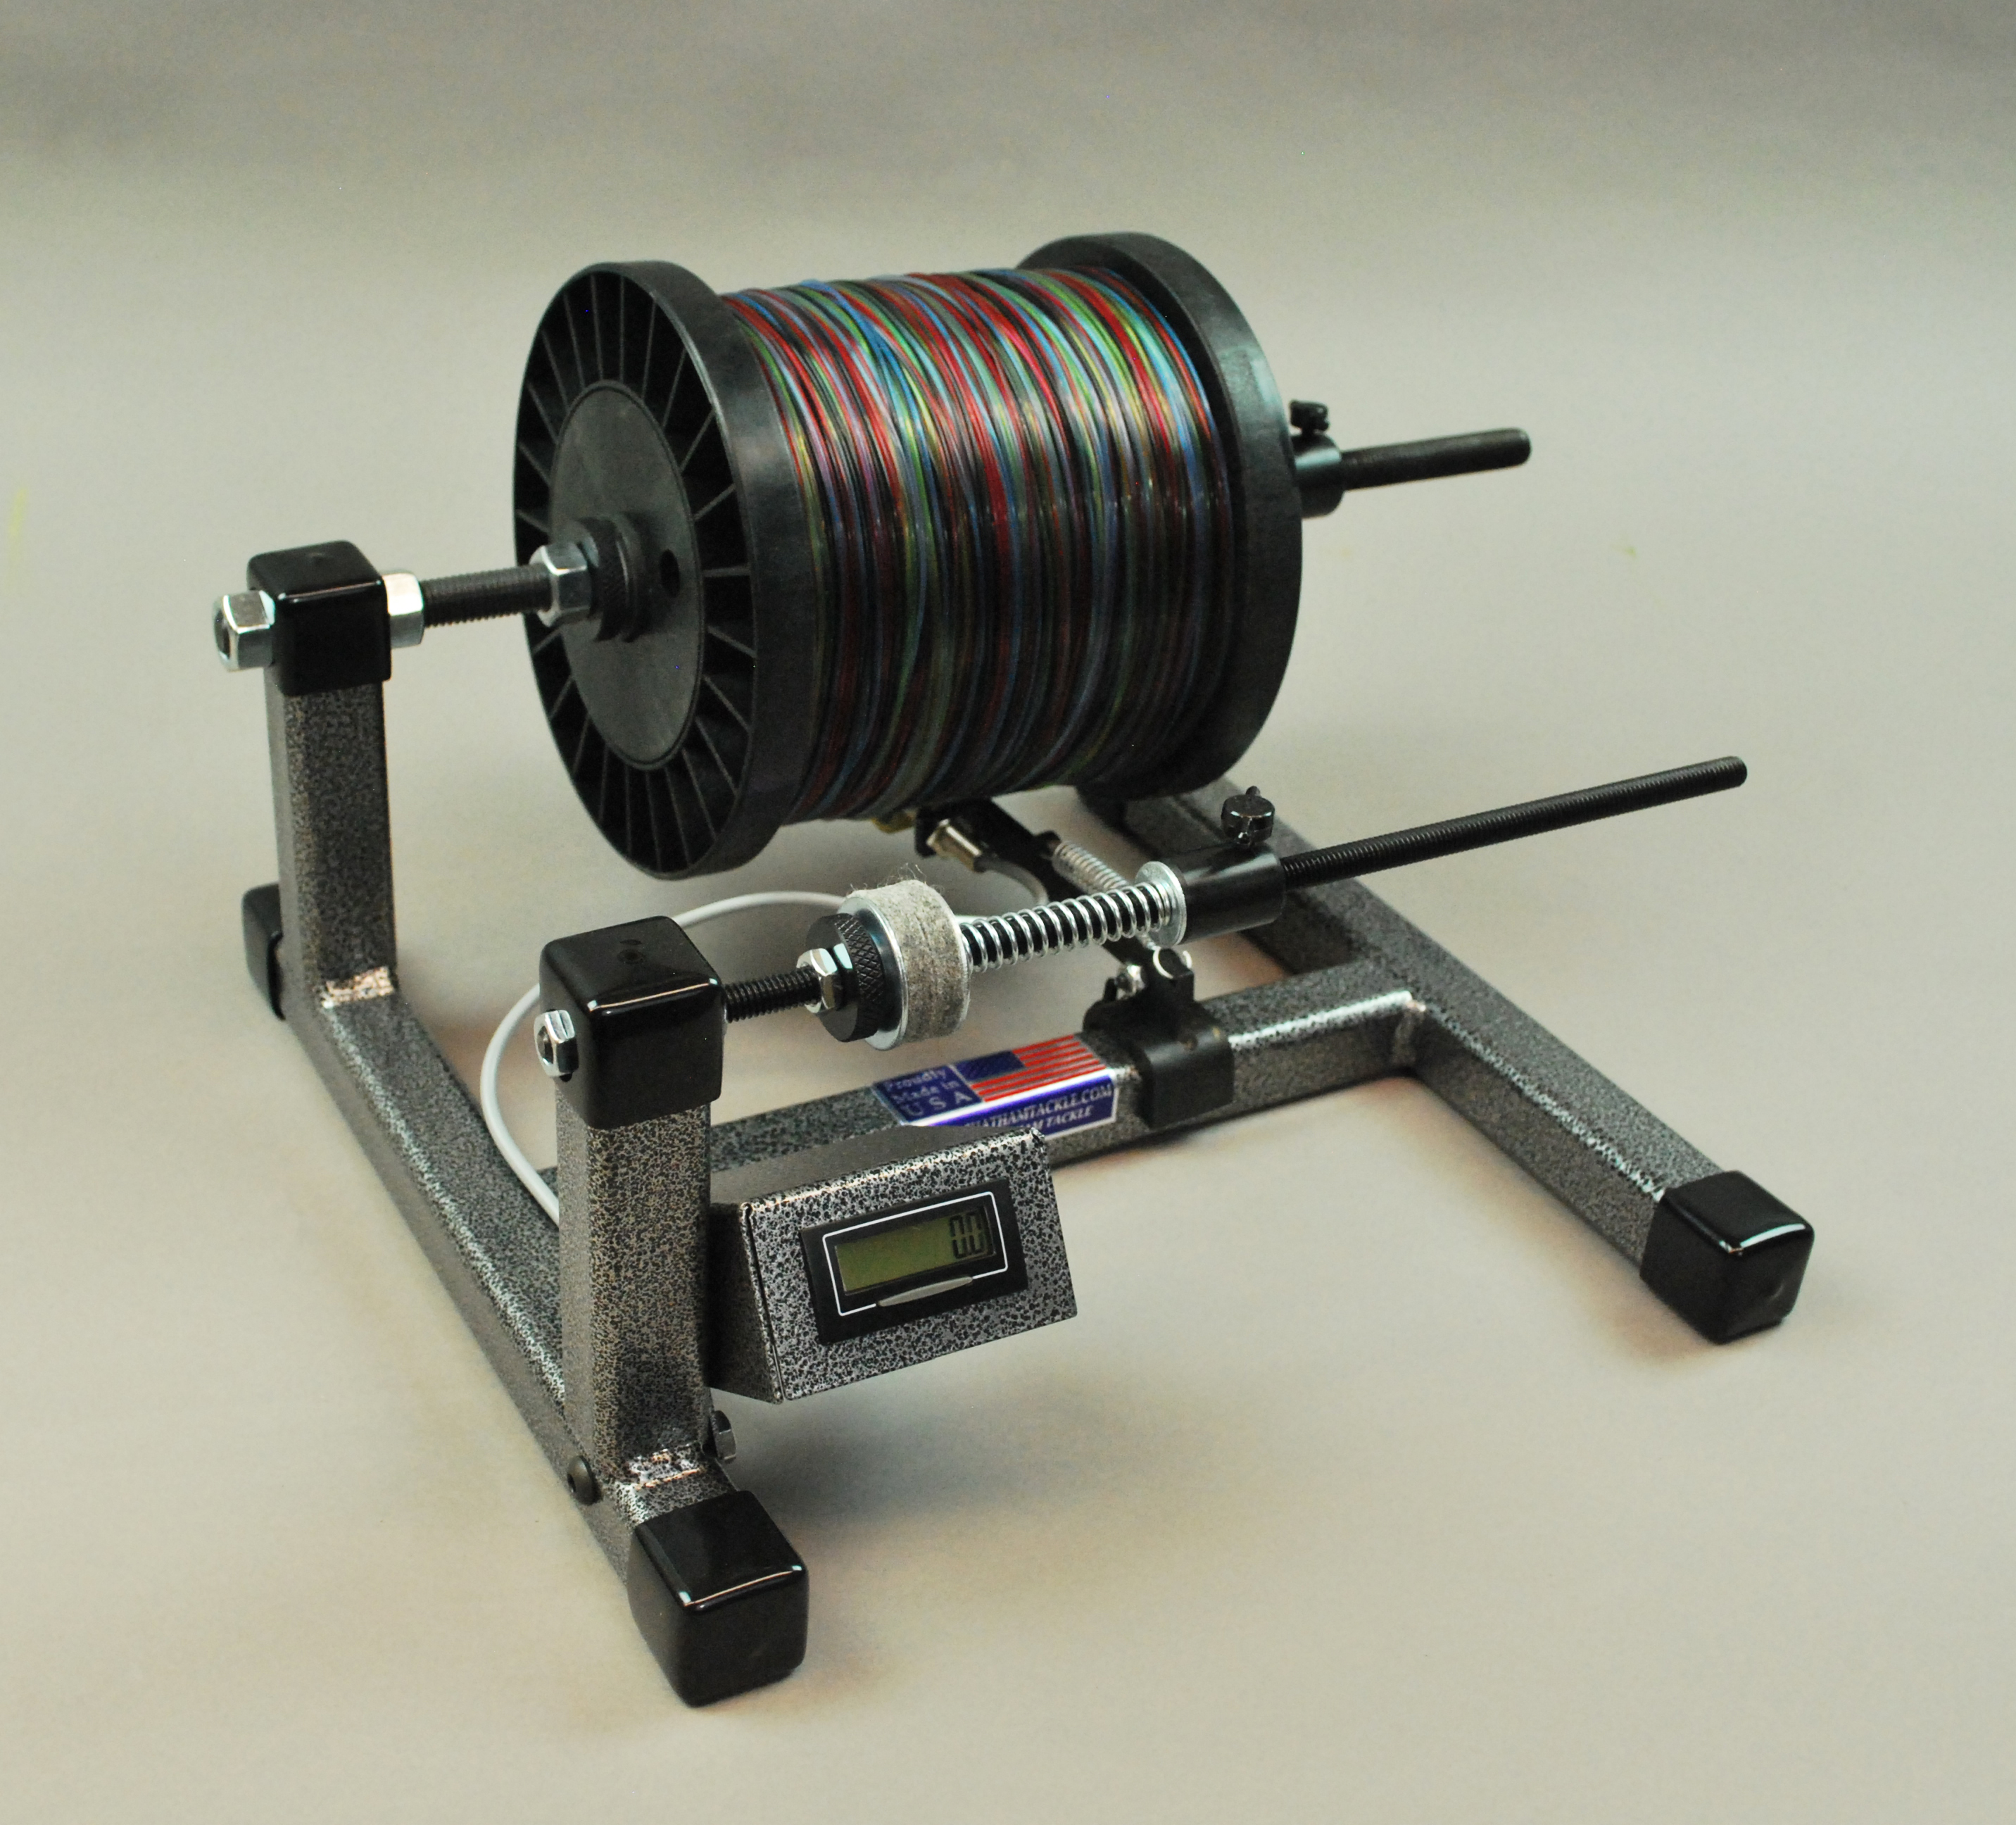 Super spooler heavy duty line spool holder with line for Fishing line holder